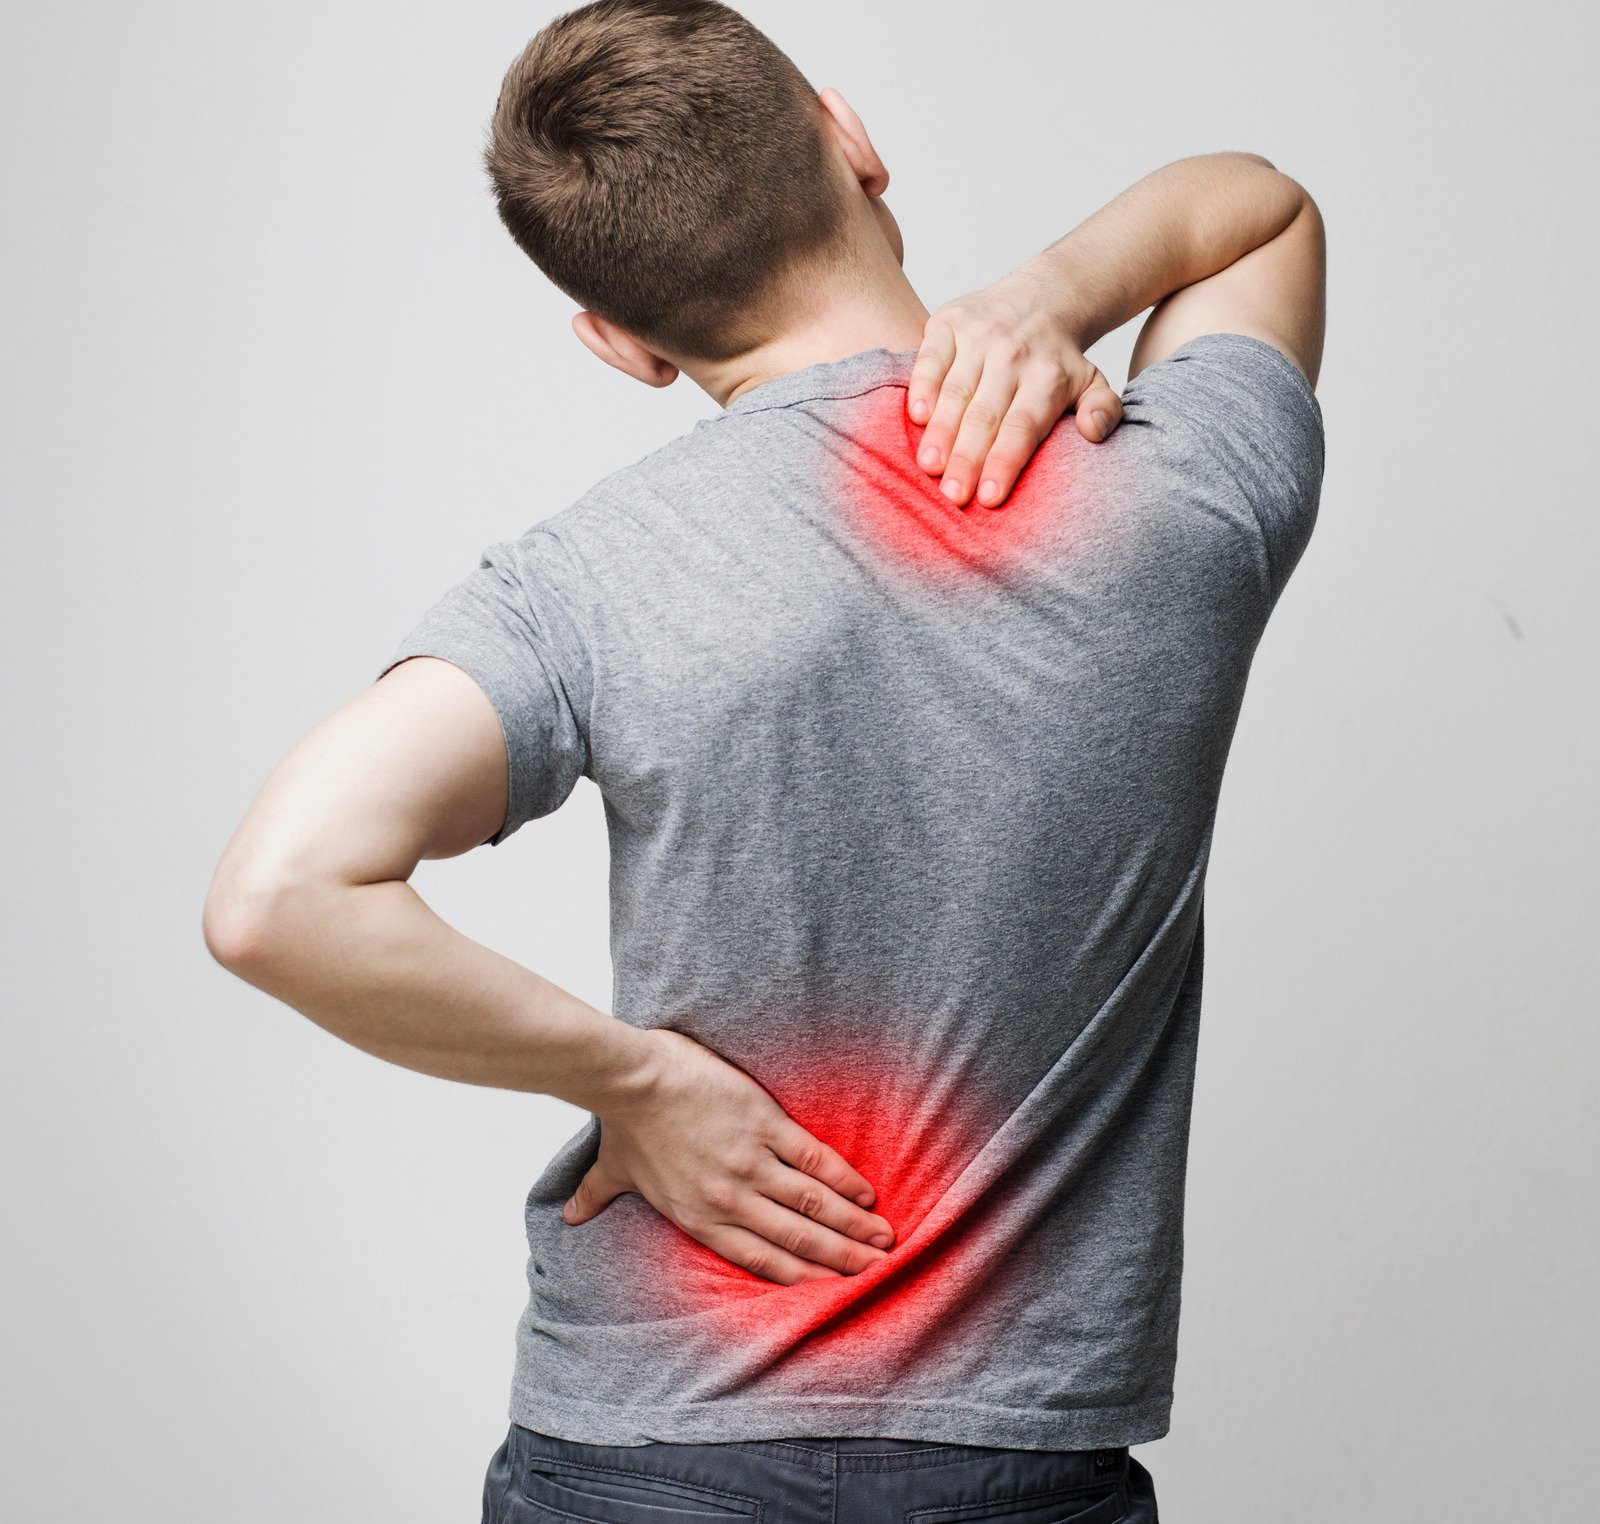 Spine osteoporosis. Scoliosis. Spinal cord problems on man's back.